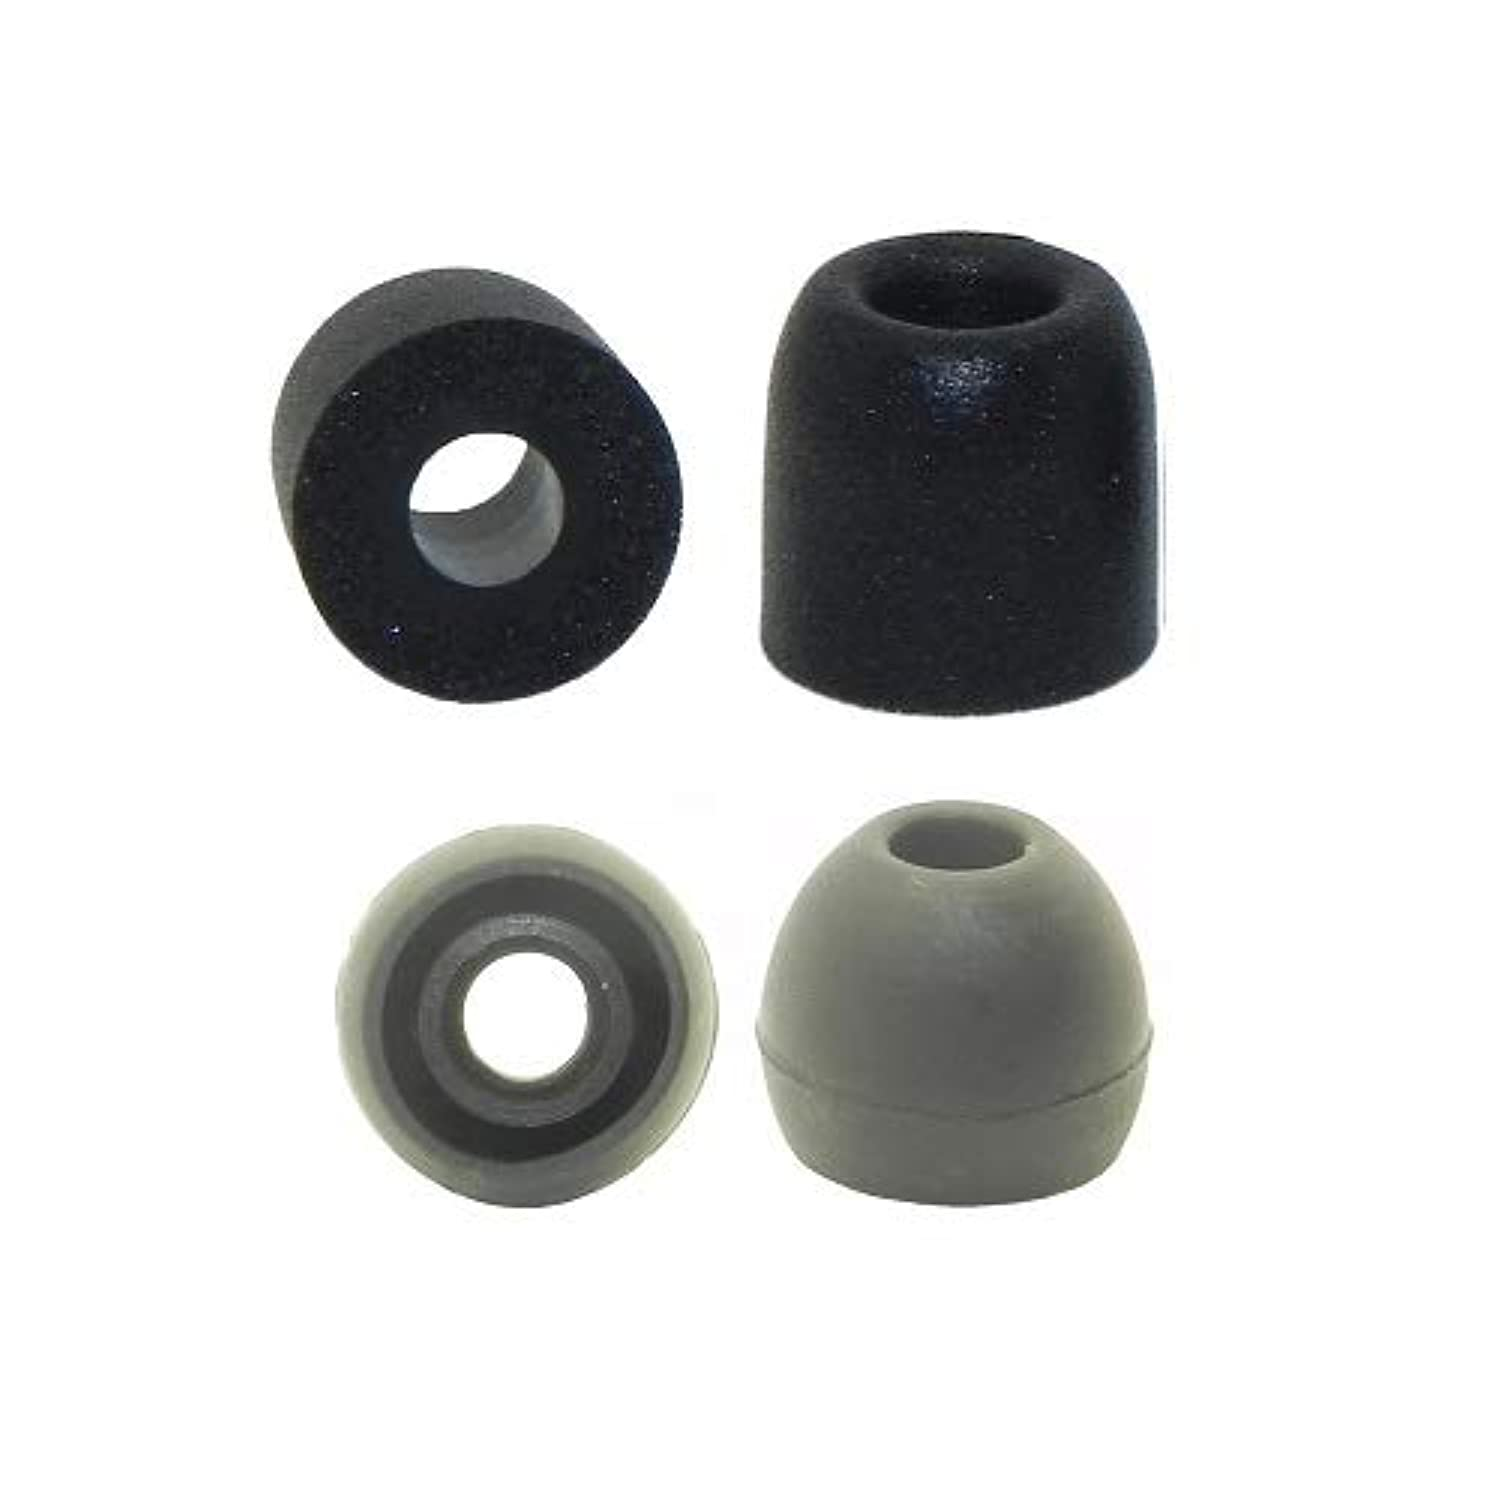 6 Pair Small Replacement Earbud Tips, eaphone Tips, Ear Tips for Mee Audio Meelectronics Earphone Models Listed Below